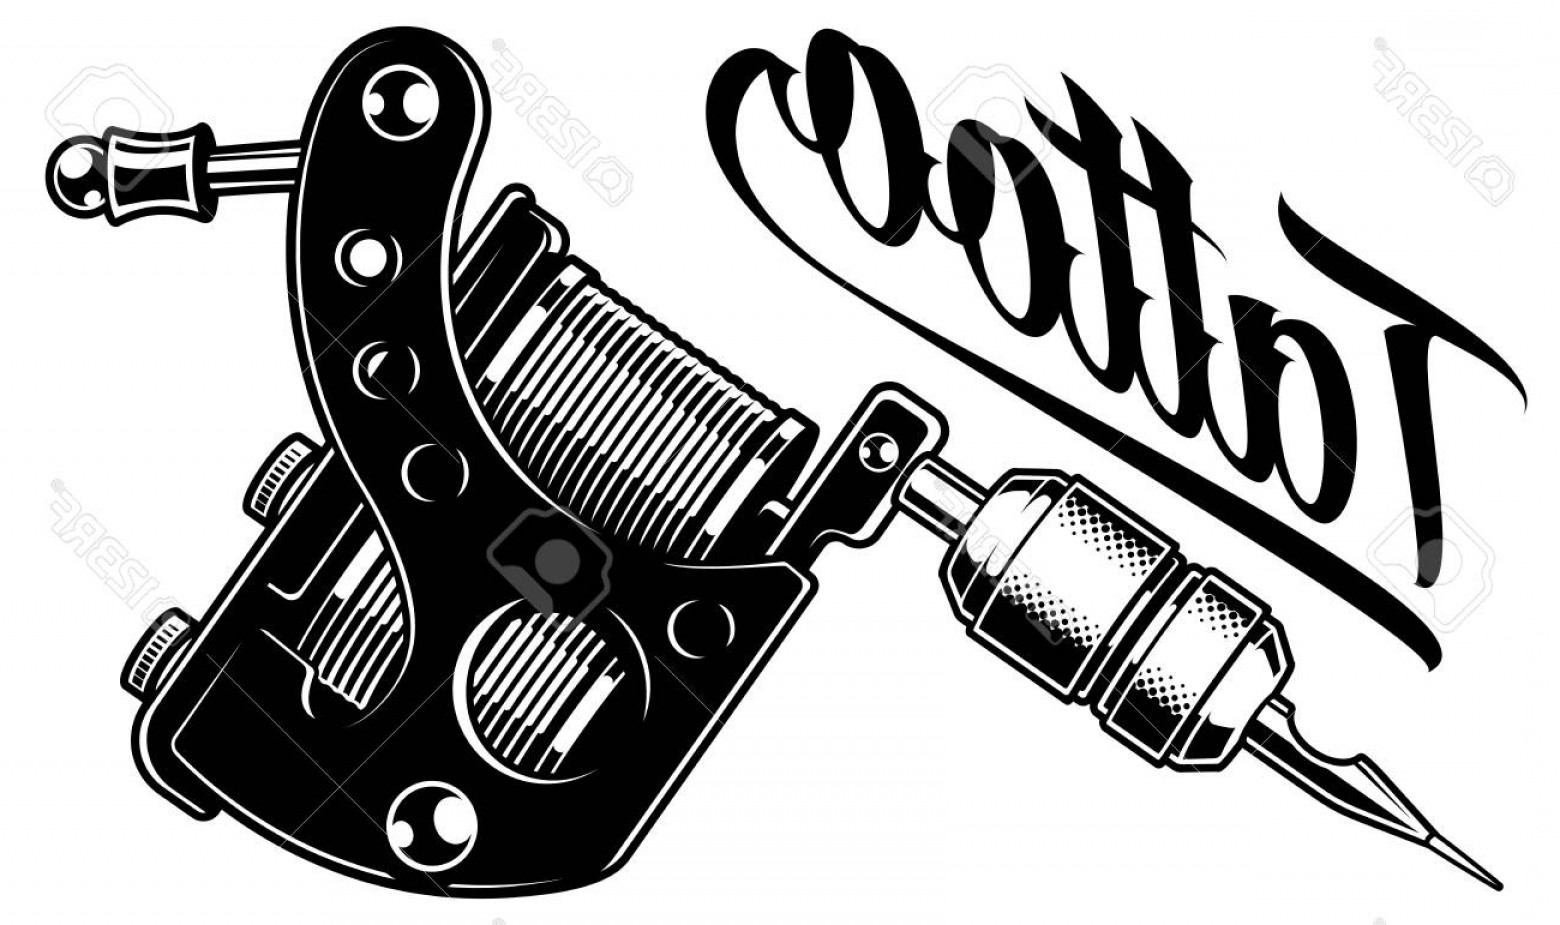 Tattoo Machine Vector Clip Art: Photostock Vector Vector Illustration Of Monochrome Tattoo Machine Isolated On White Background